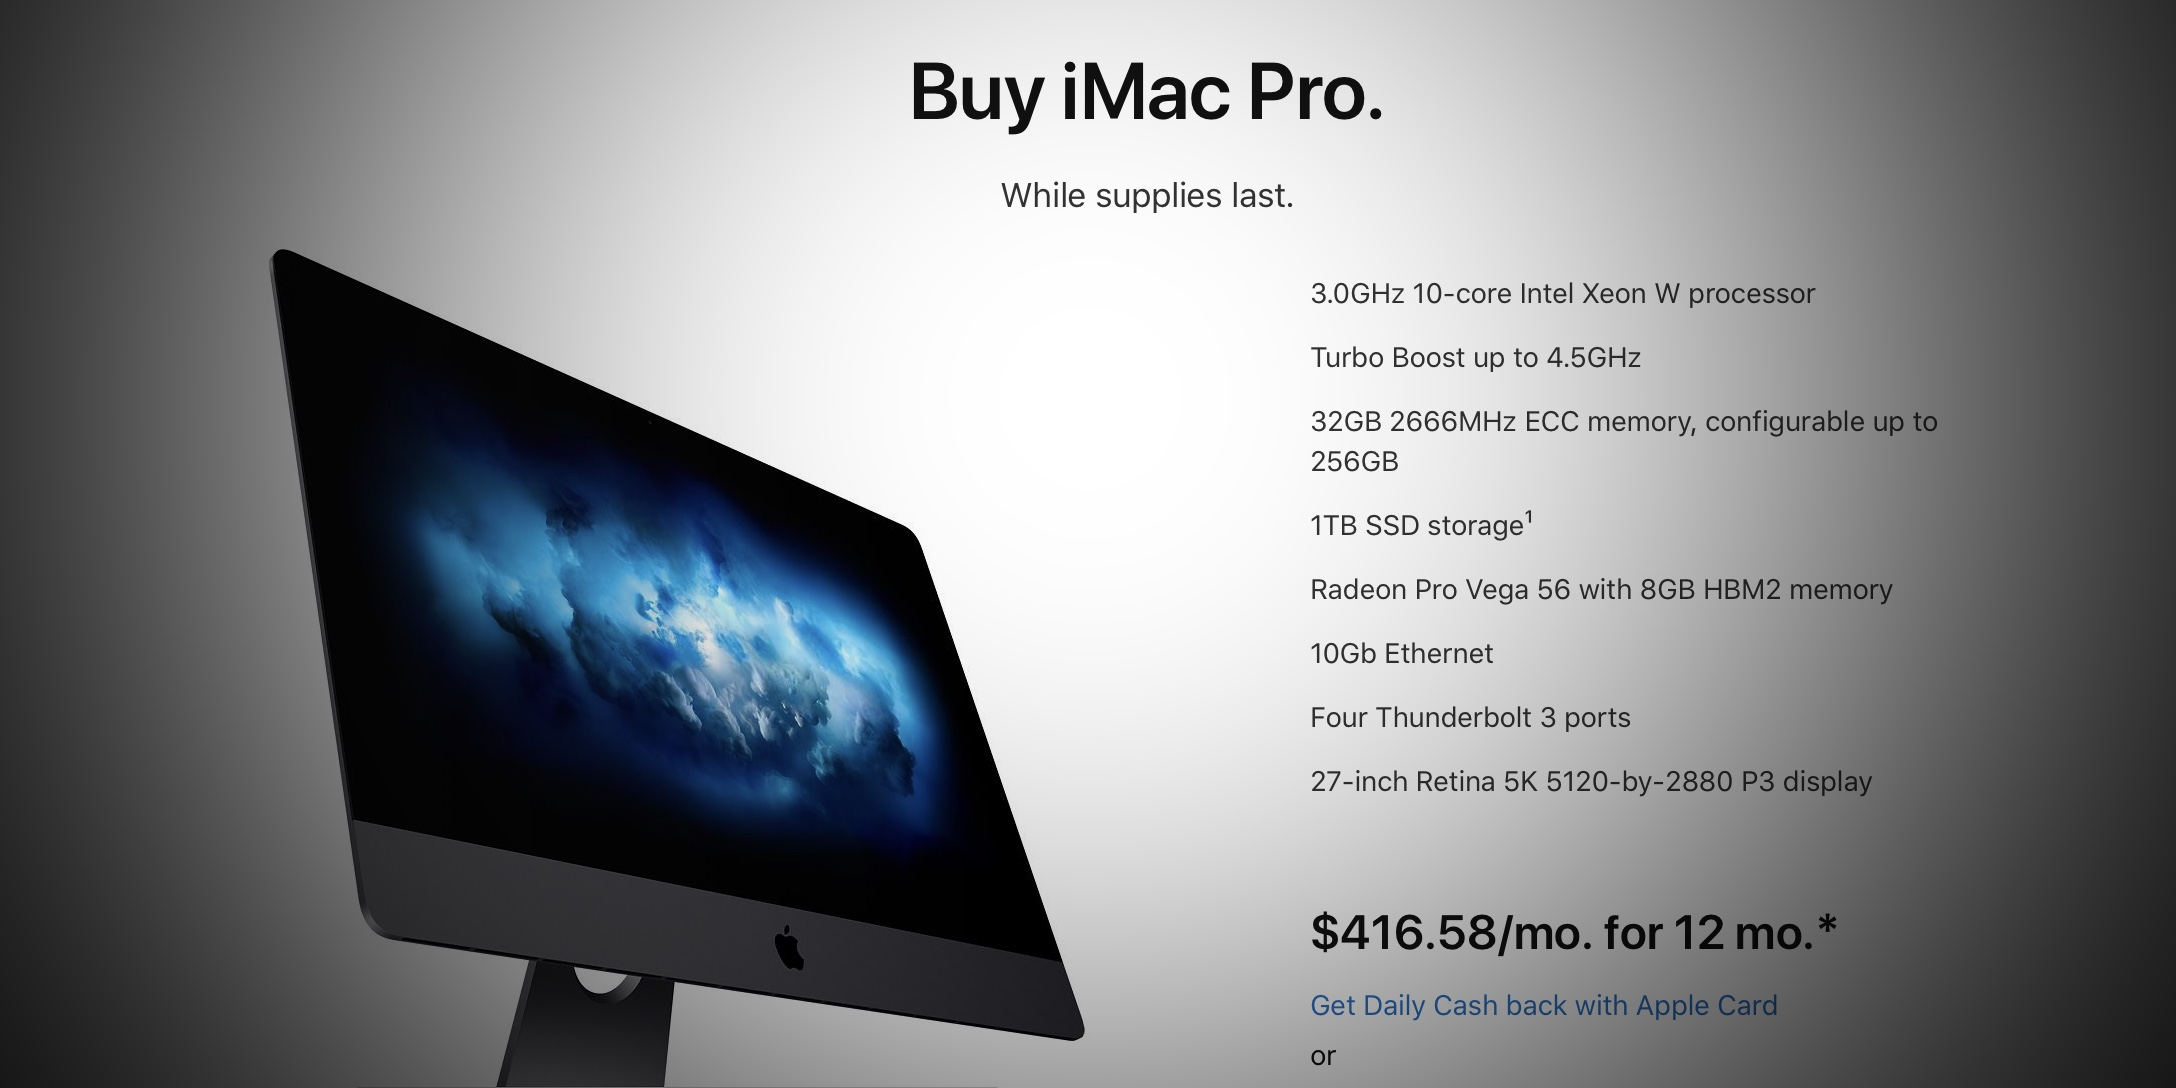 Apple discontinues iMac Pro, Apple Store says buy 'while supplies last'